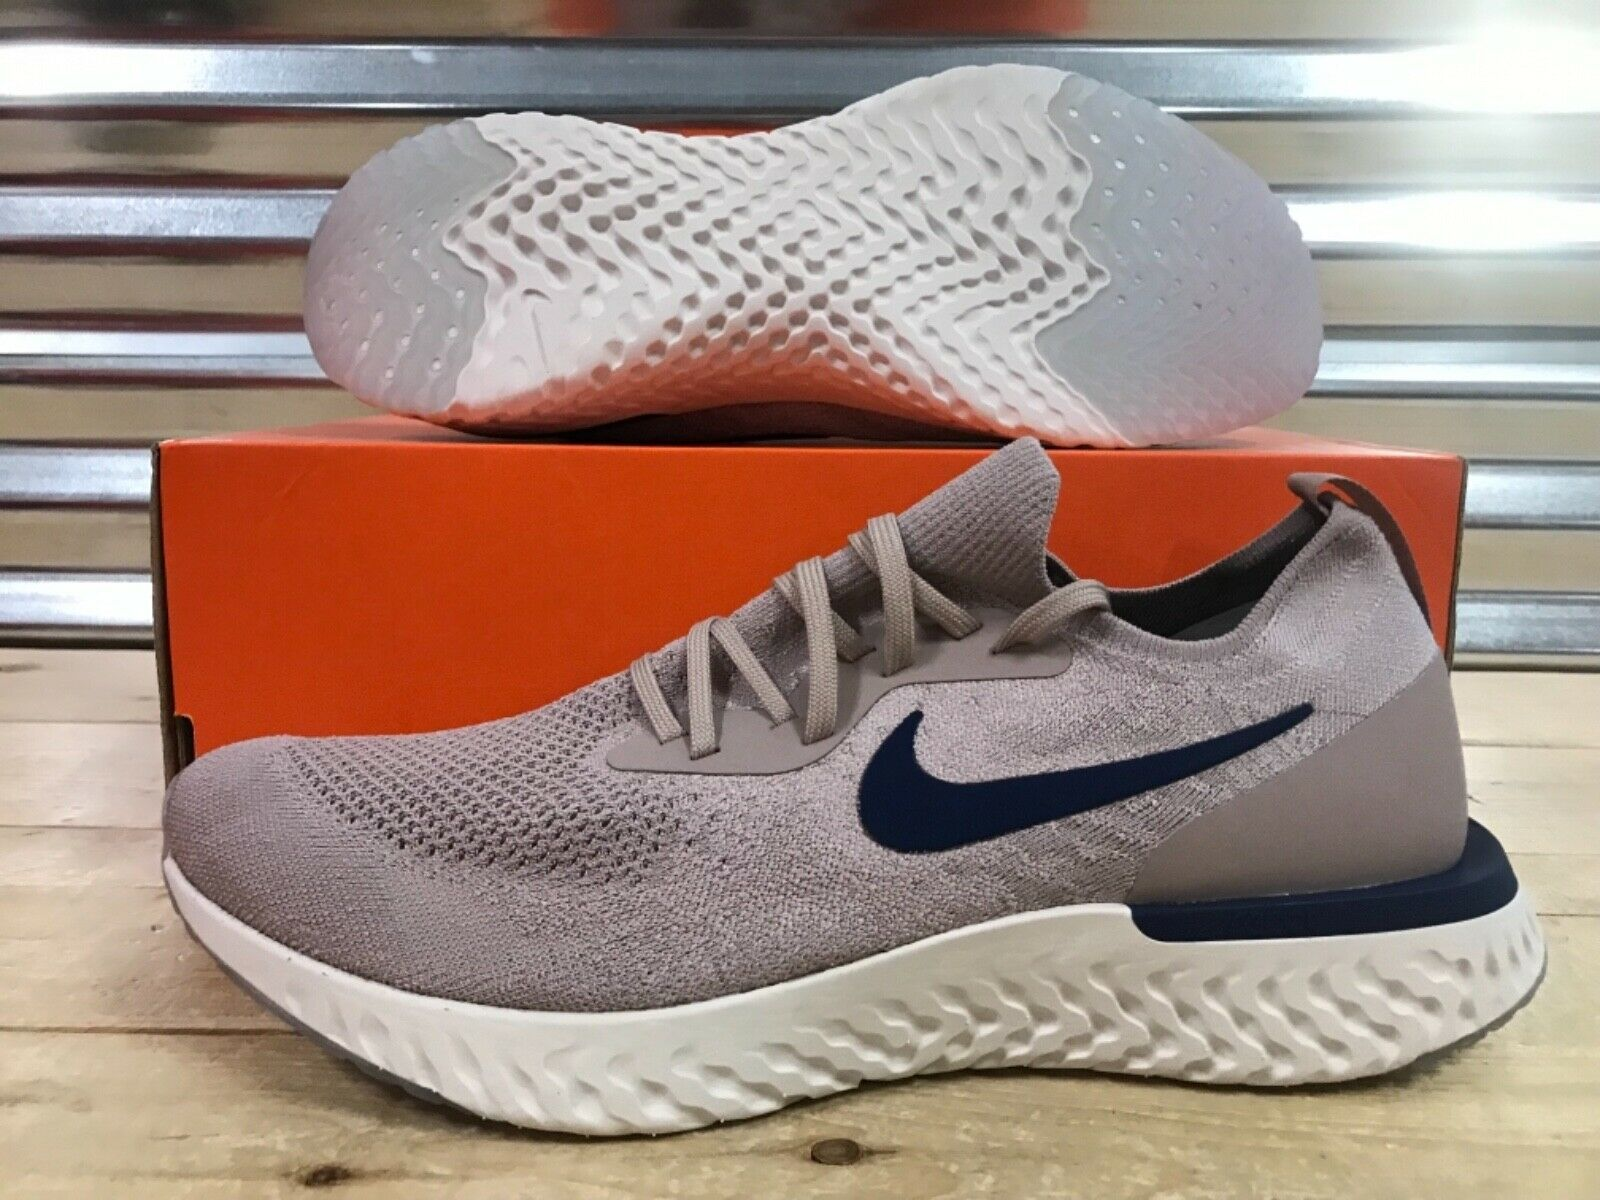 Nike Epic React Flyknit Running shoes Diffused Taupe blueee SZ ( AQ0067-201 )